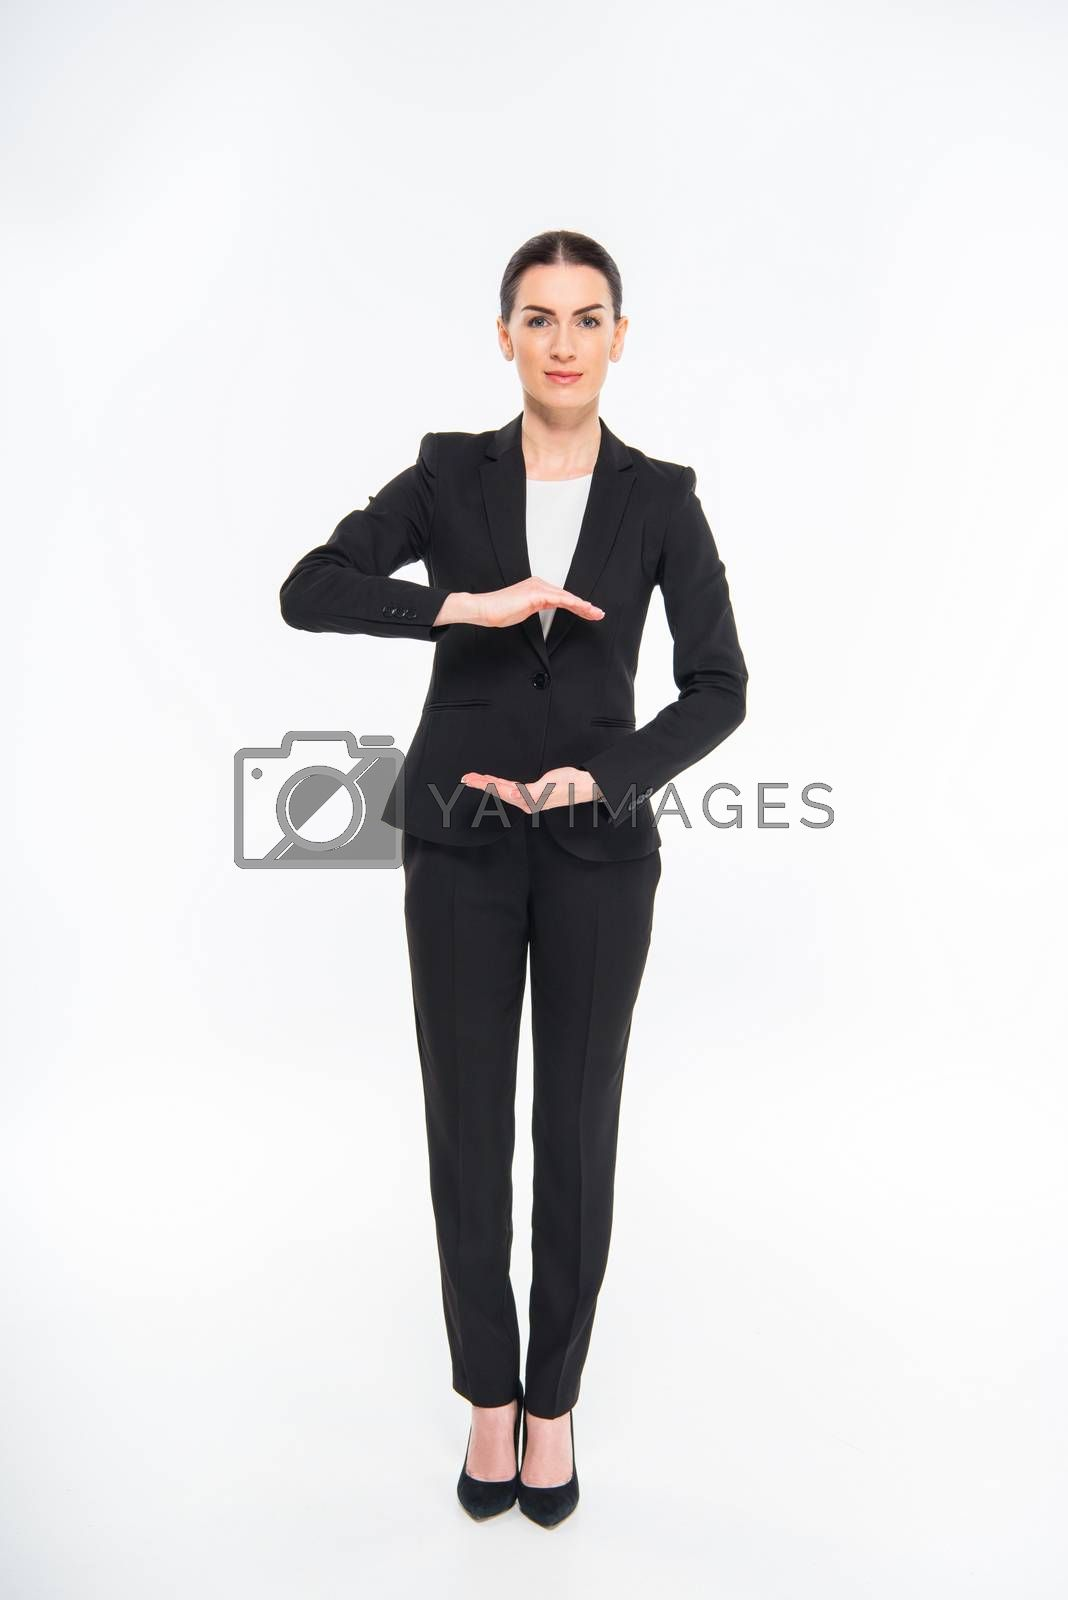 Attractive businesswoman gesturing with hands and looking at camera on white